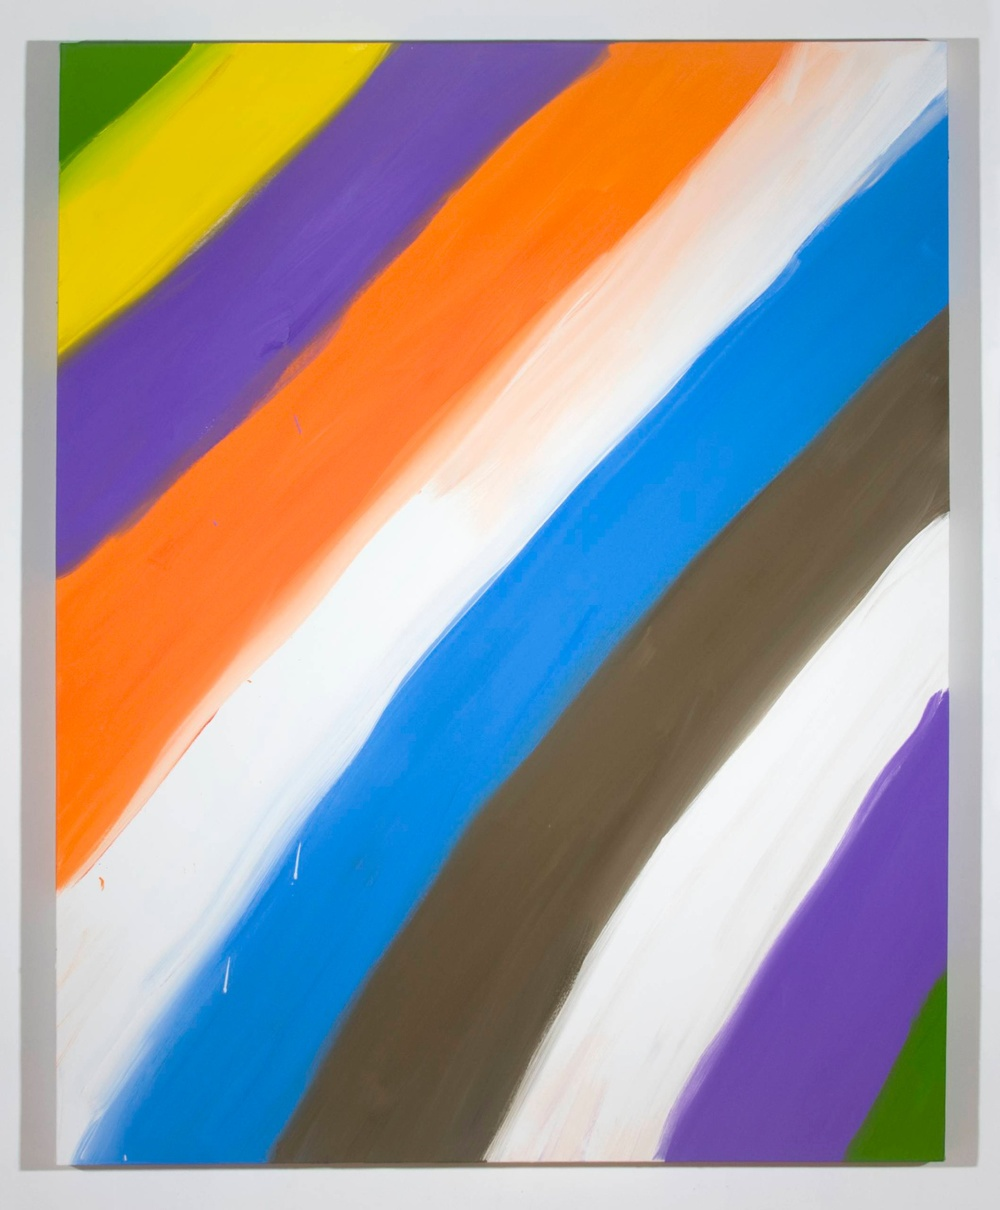 Ann Craven  Untitled (Stripe Green yellow purple 1-31-08)  2008 Oil on canvas 60h x 48w in AC043